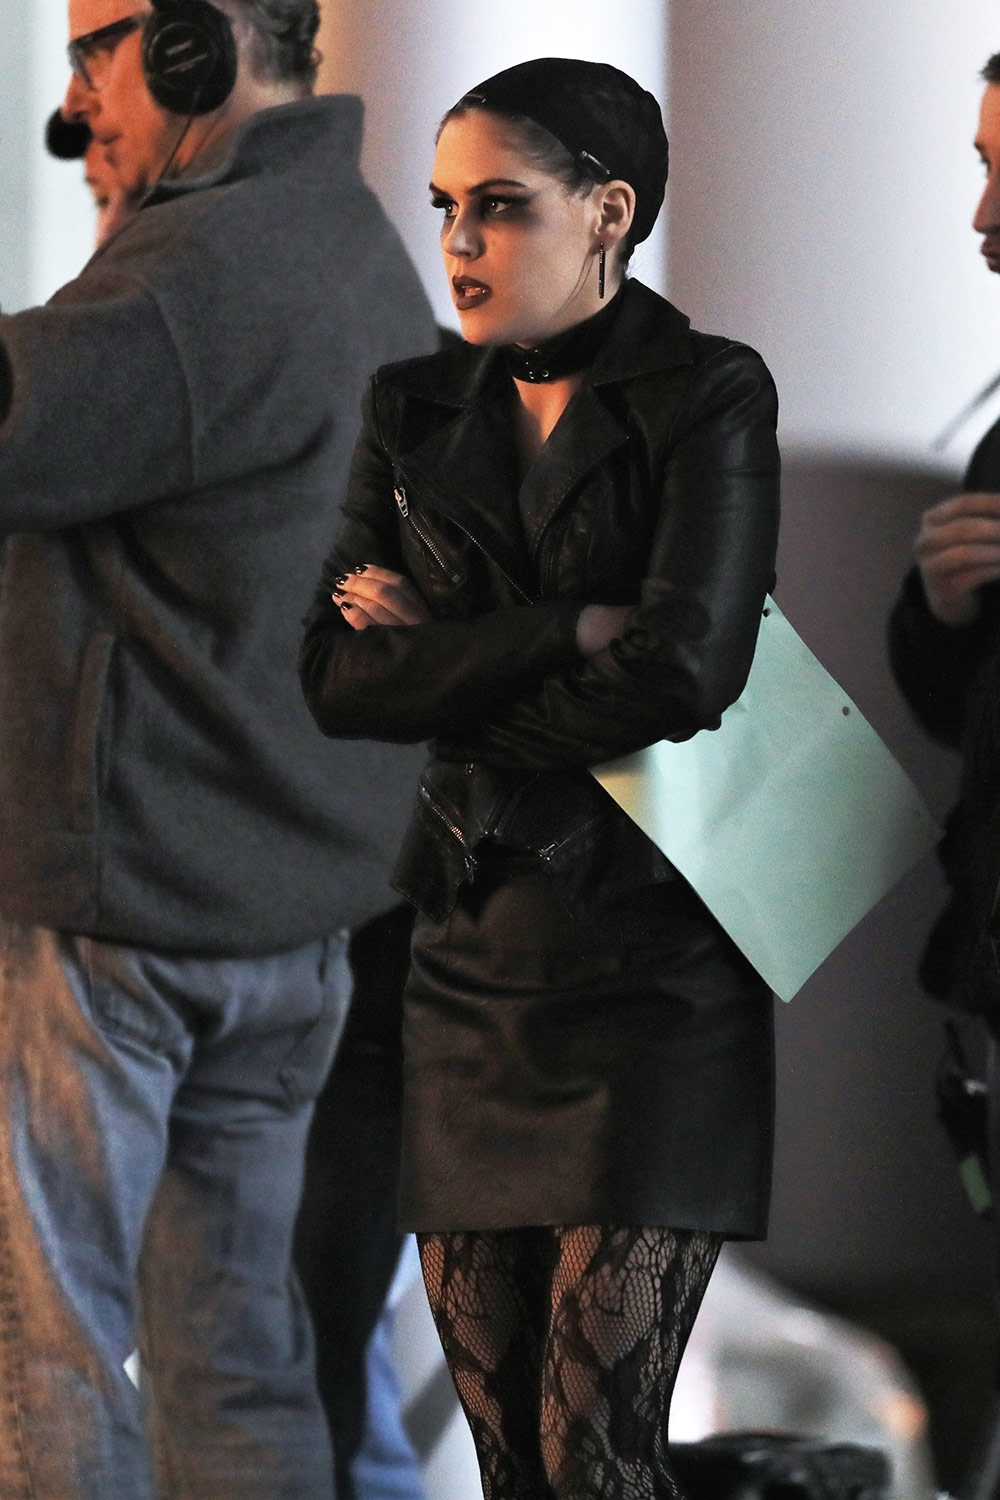 Rachel Bilson on the set of the TV show 'Take Two'